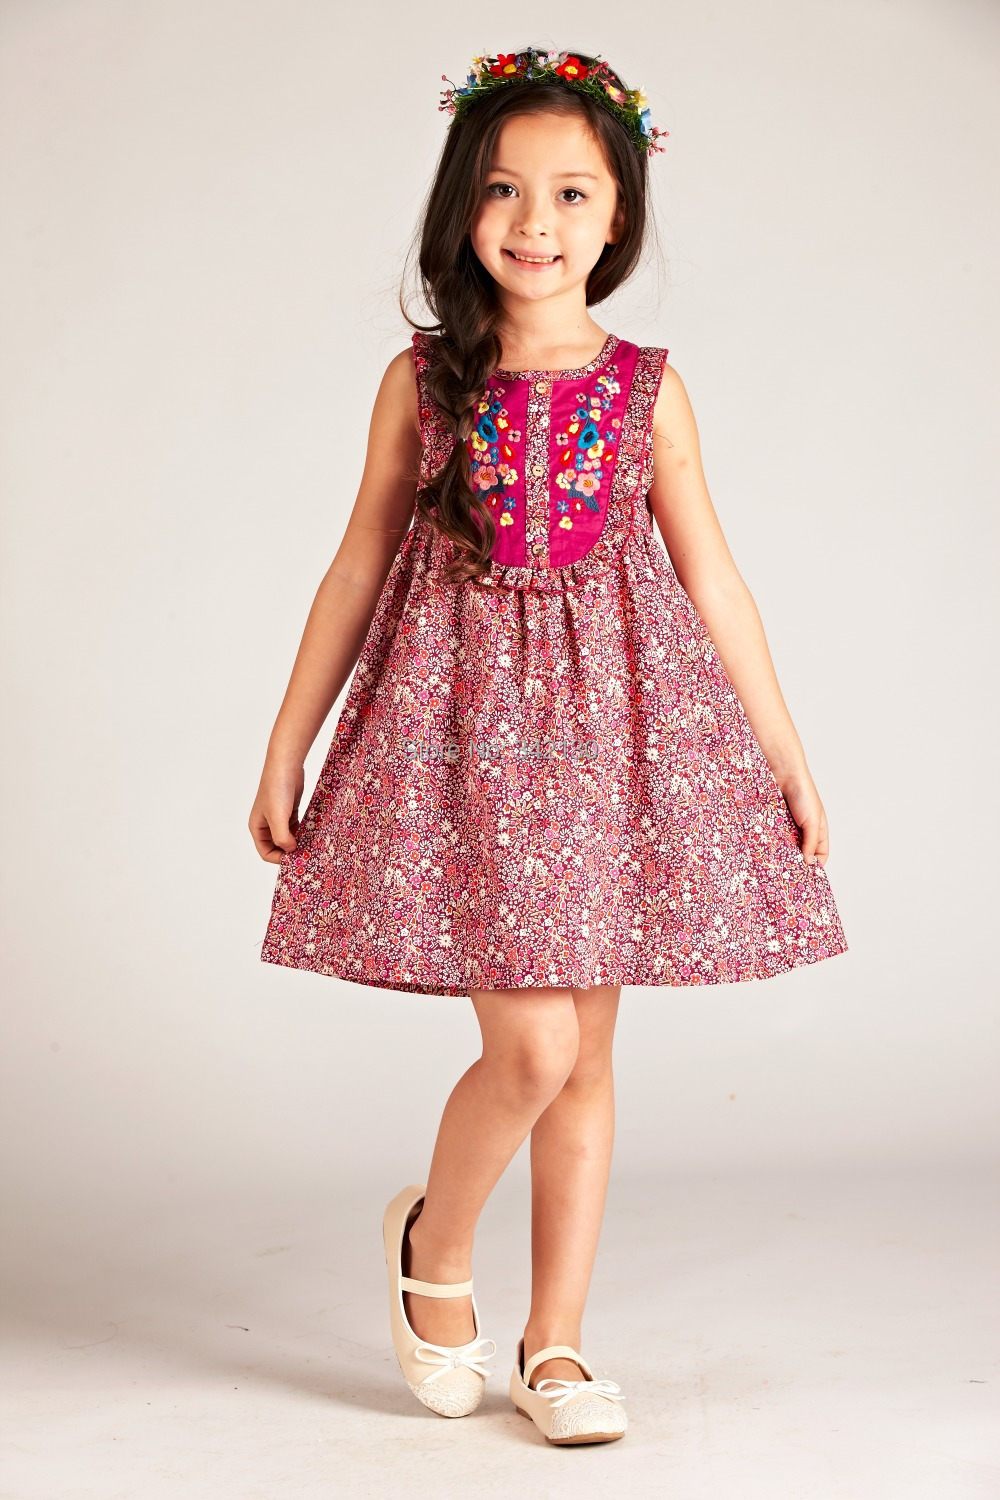 Free shipping on girls' clothes (X) at ggso.ga Shop dresses, tops, jeans, hoodies, pants, coats and more. Totally free shipping and returns.